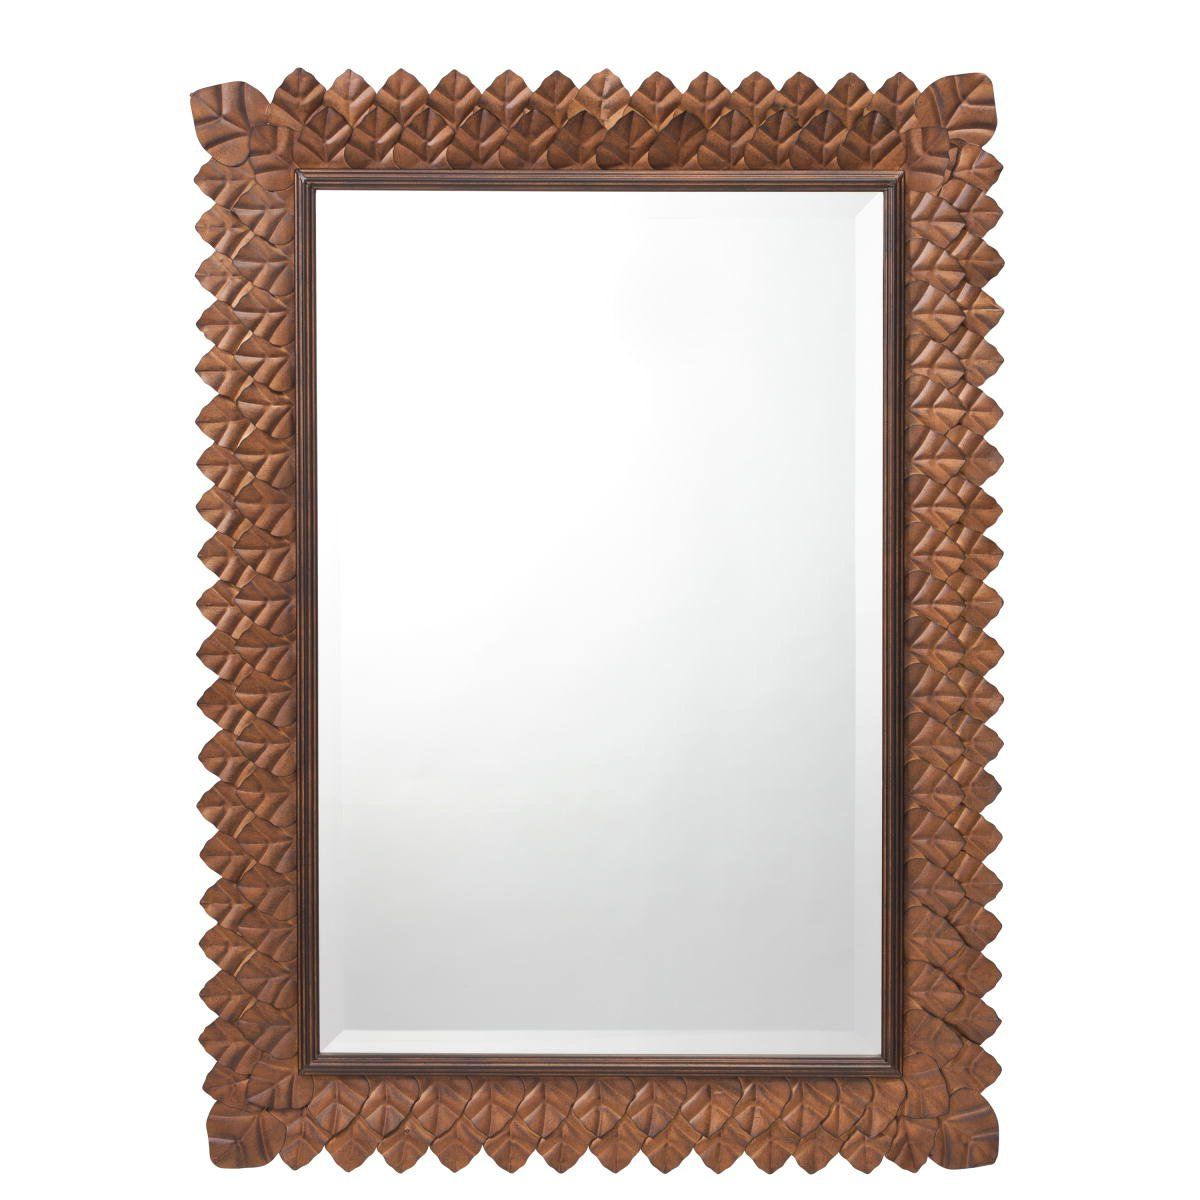 Have To Have It Kichler Keaton Wall Mirror 28 5 X 39 In